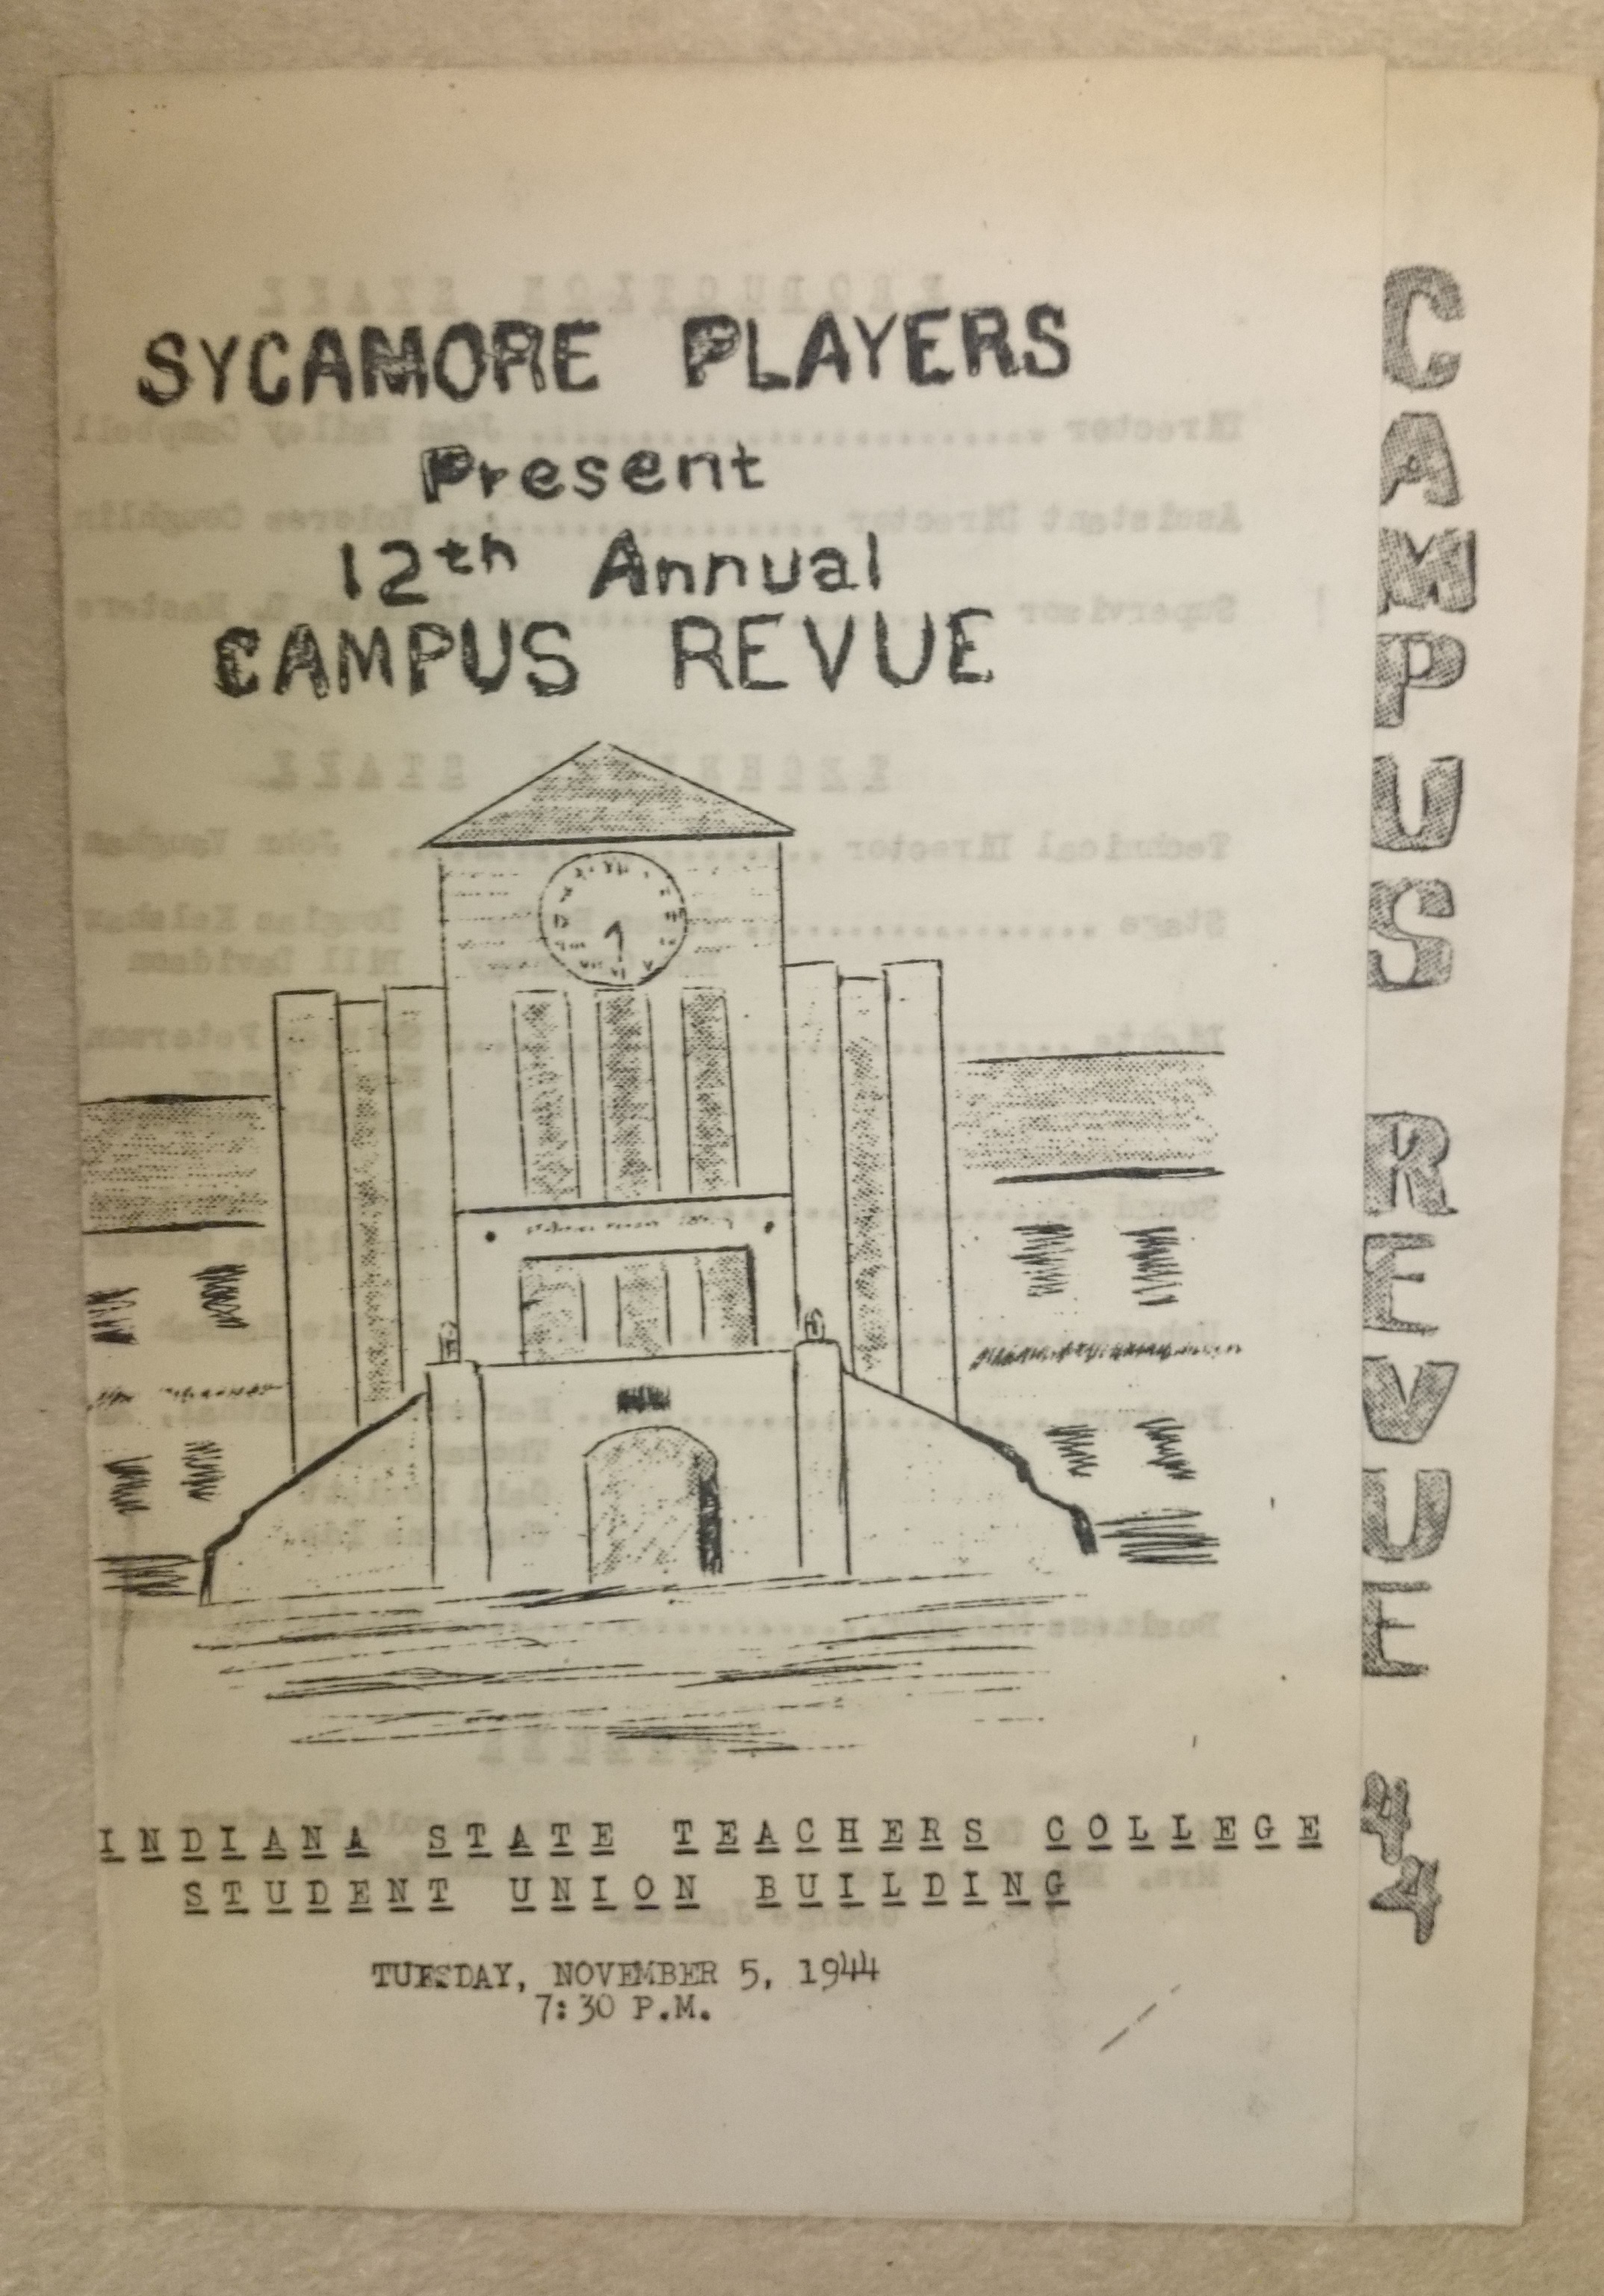 Sycamore Players Present 12th Annual Campus Revue